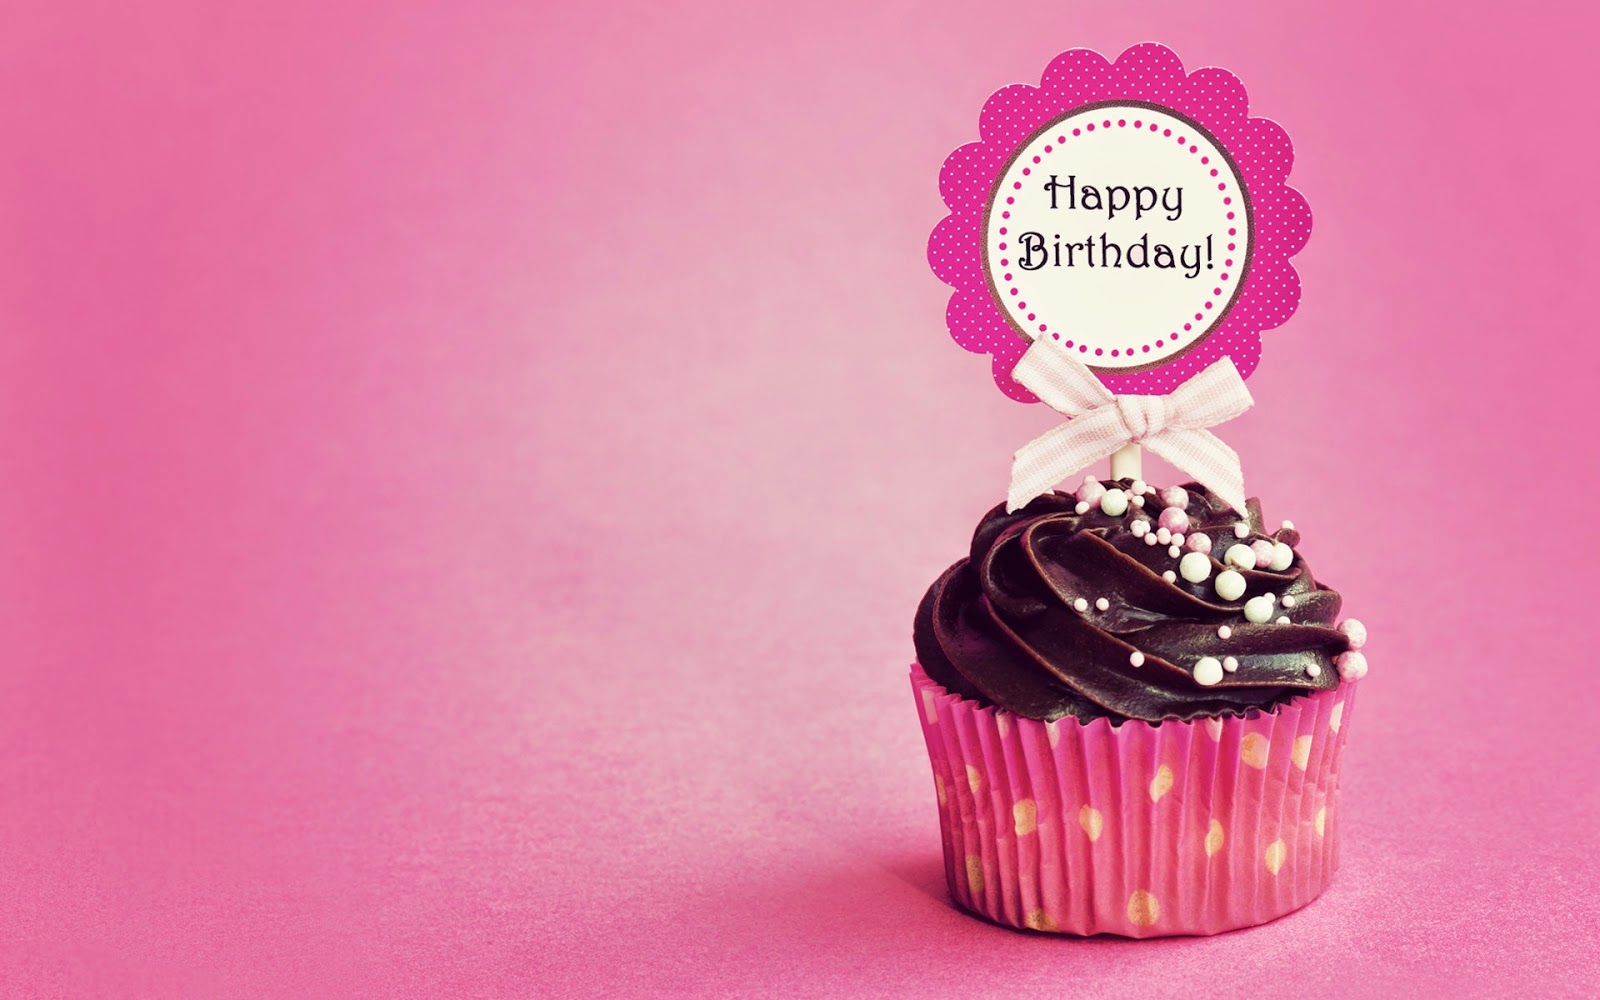 Cake Photo HD Picture Image Background Free Desktop